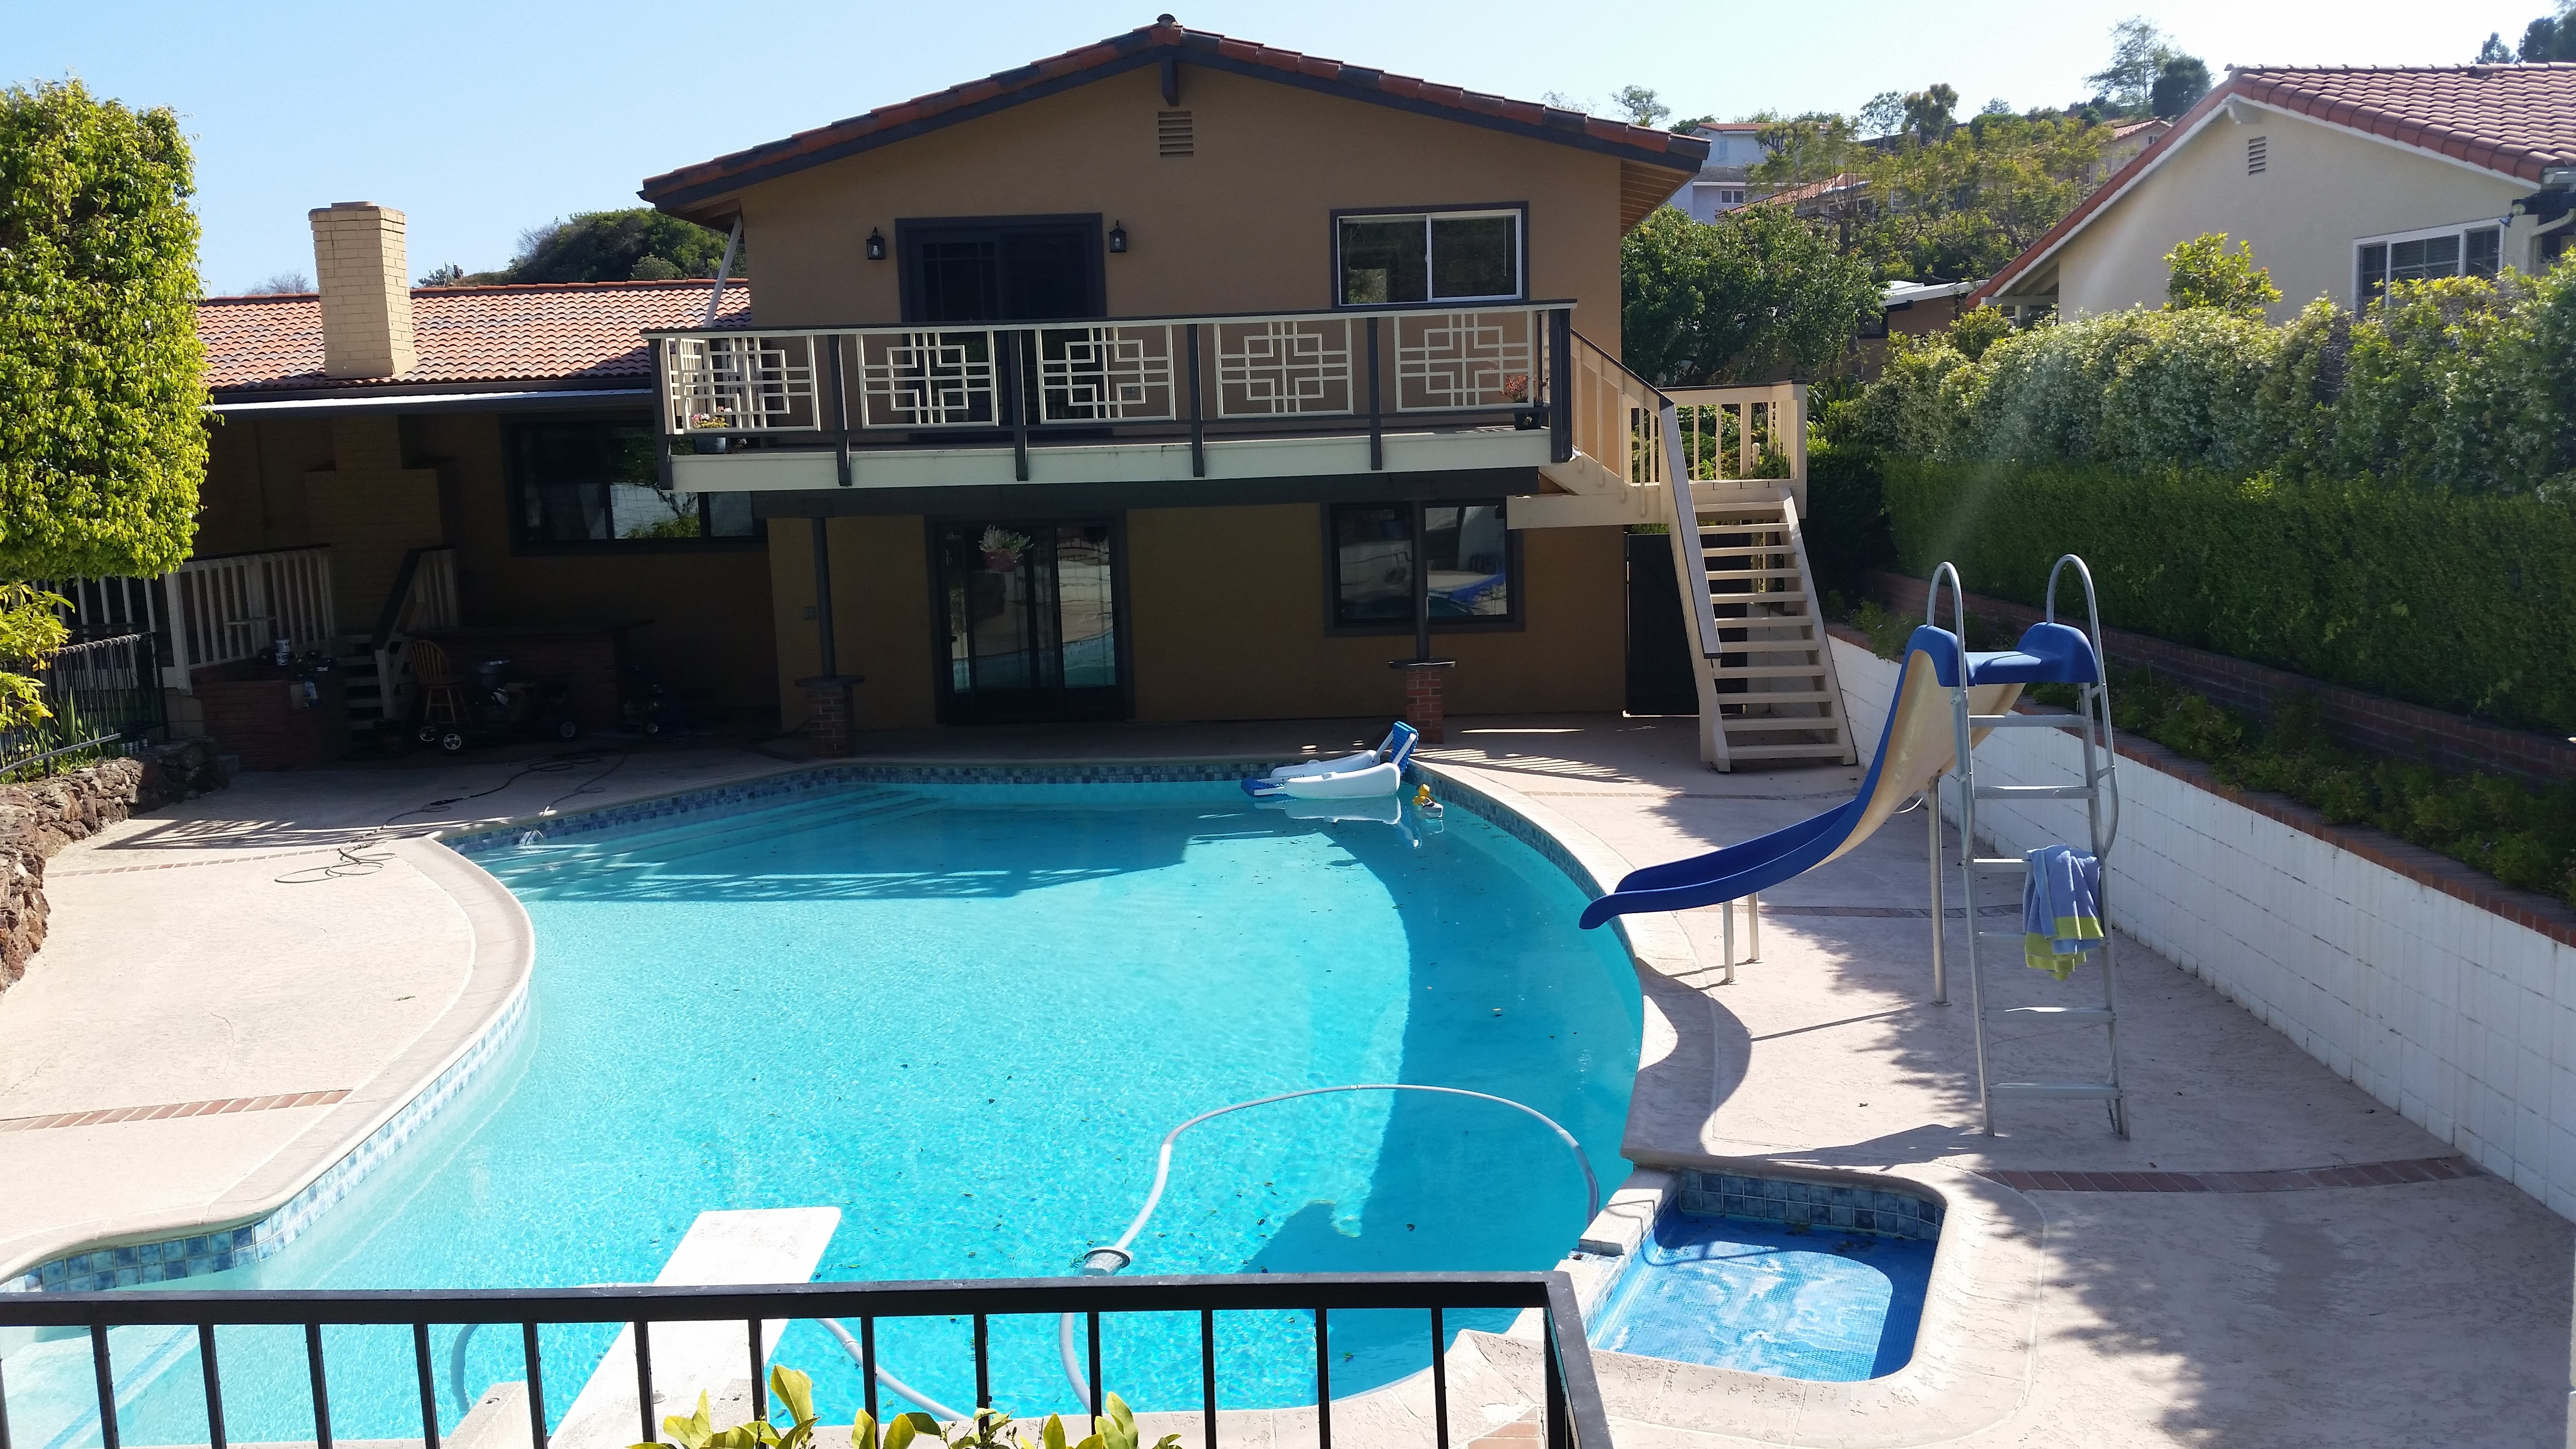 home tour may 7th 1 pm to 4 37 pm rancho palos verdes